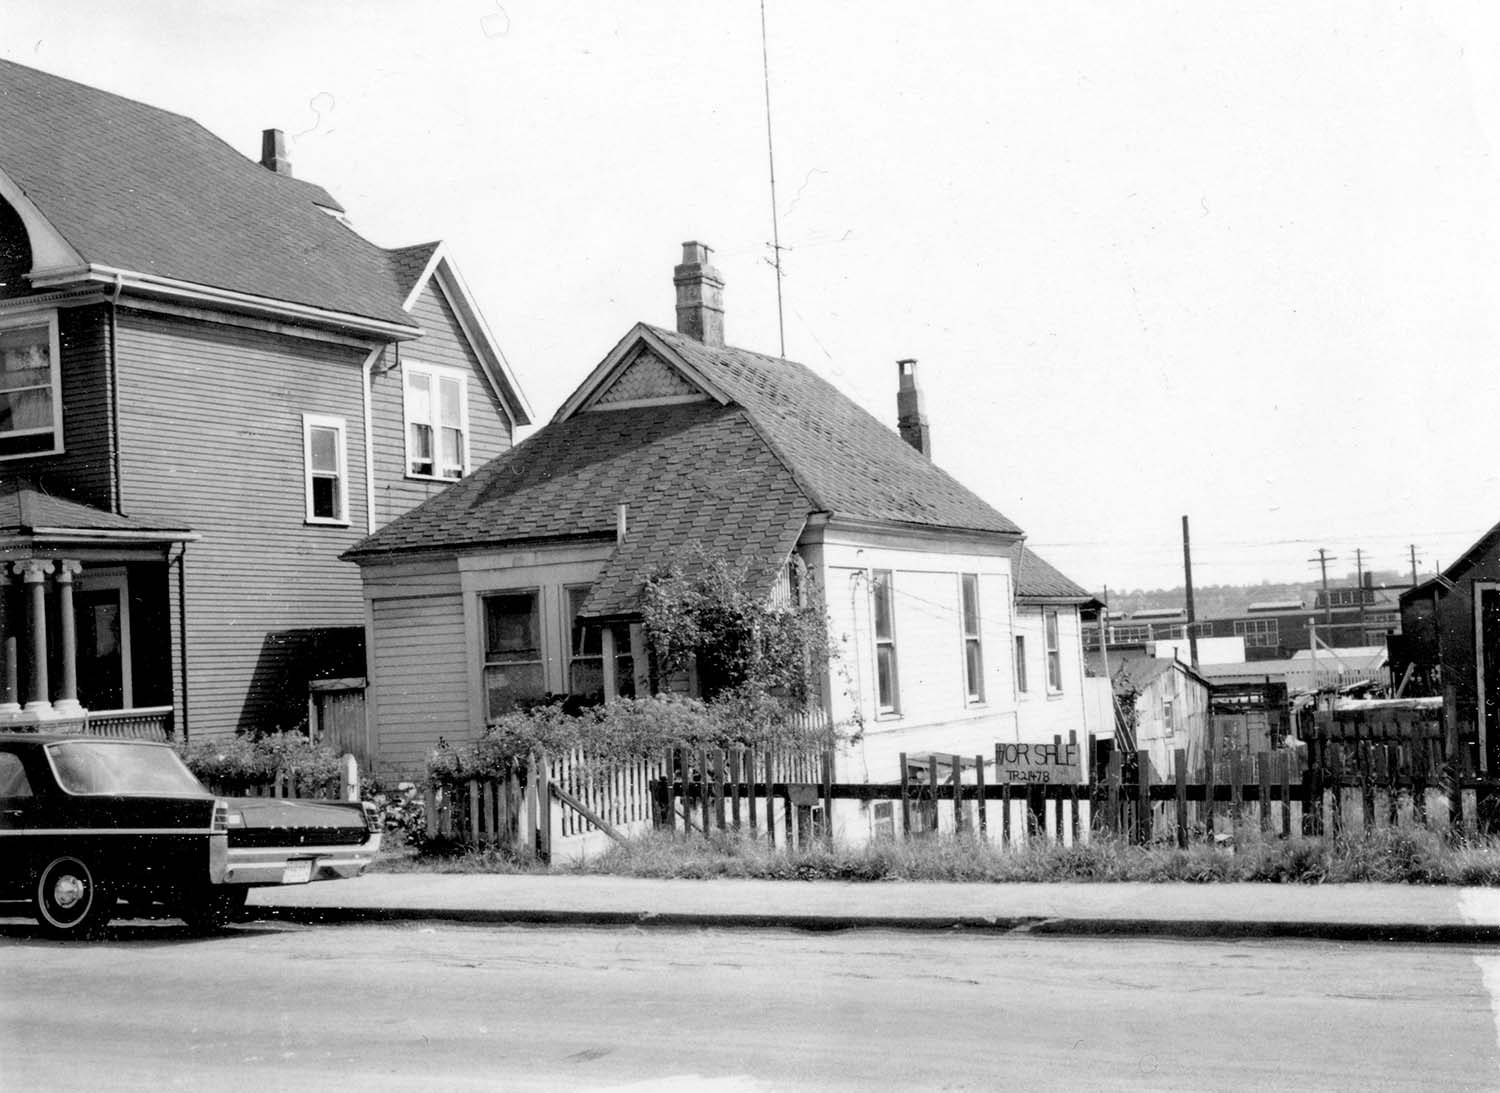 264 Union Street, front, 1969. Photograph also shows part of 268 Union Street. Reference code COV-S168-: CVA 203-49